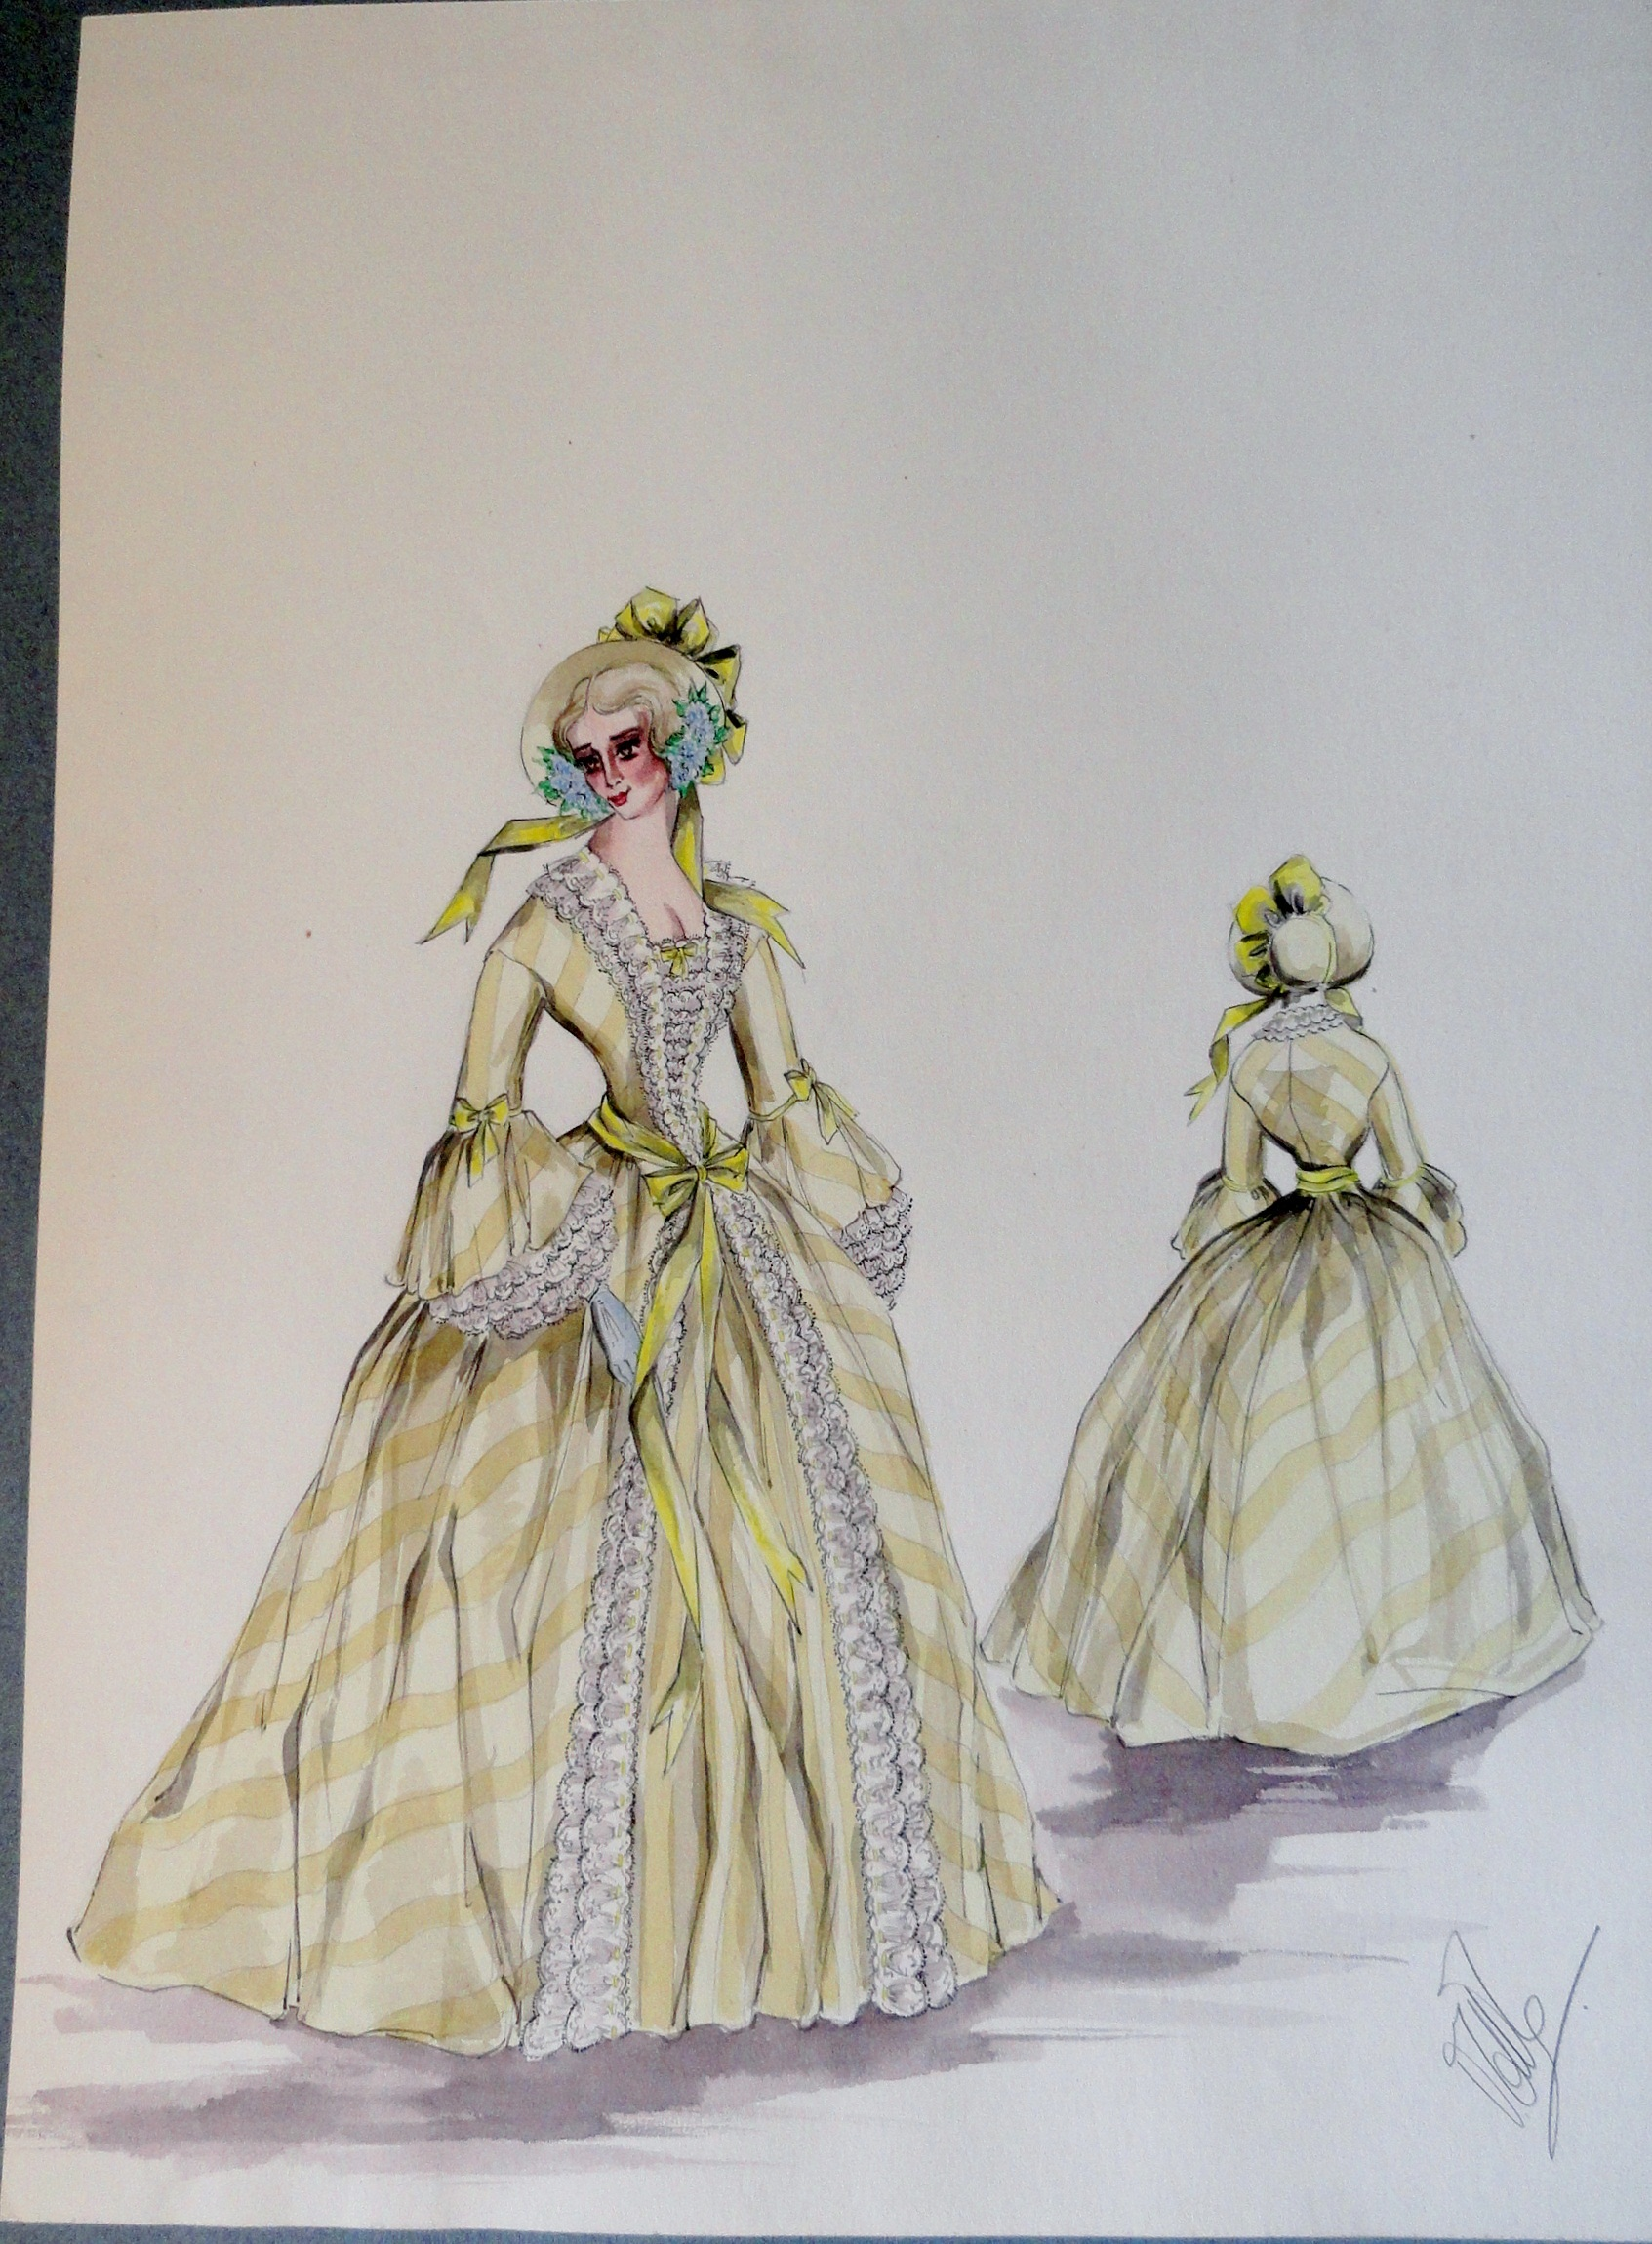 Rachel sister Annette in long yellow gown and bonnet . Pen and ink and gouache painting on paper. From the Rachel Portfolio by Owen Hyde Clark. $400.00